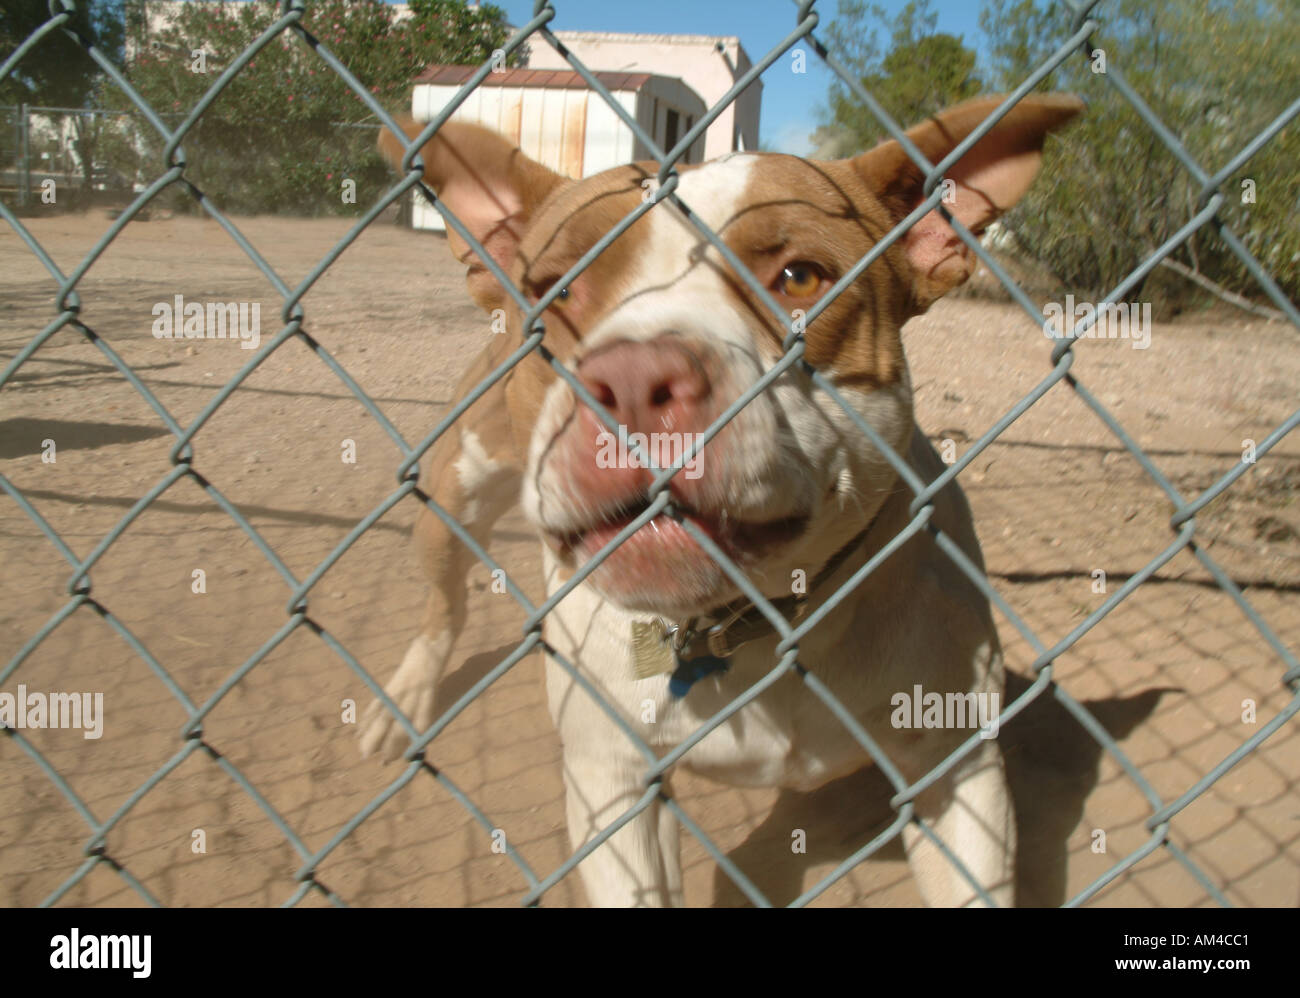 Angry dog behind a fence snarls at the viewer - Stock Image